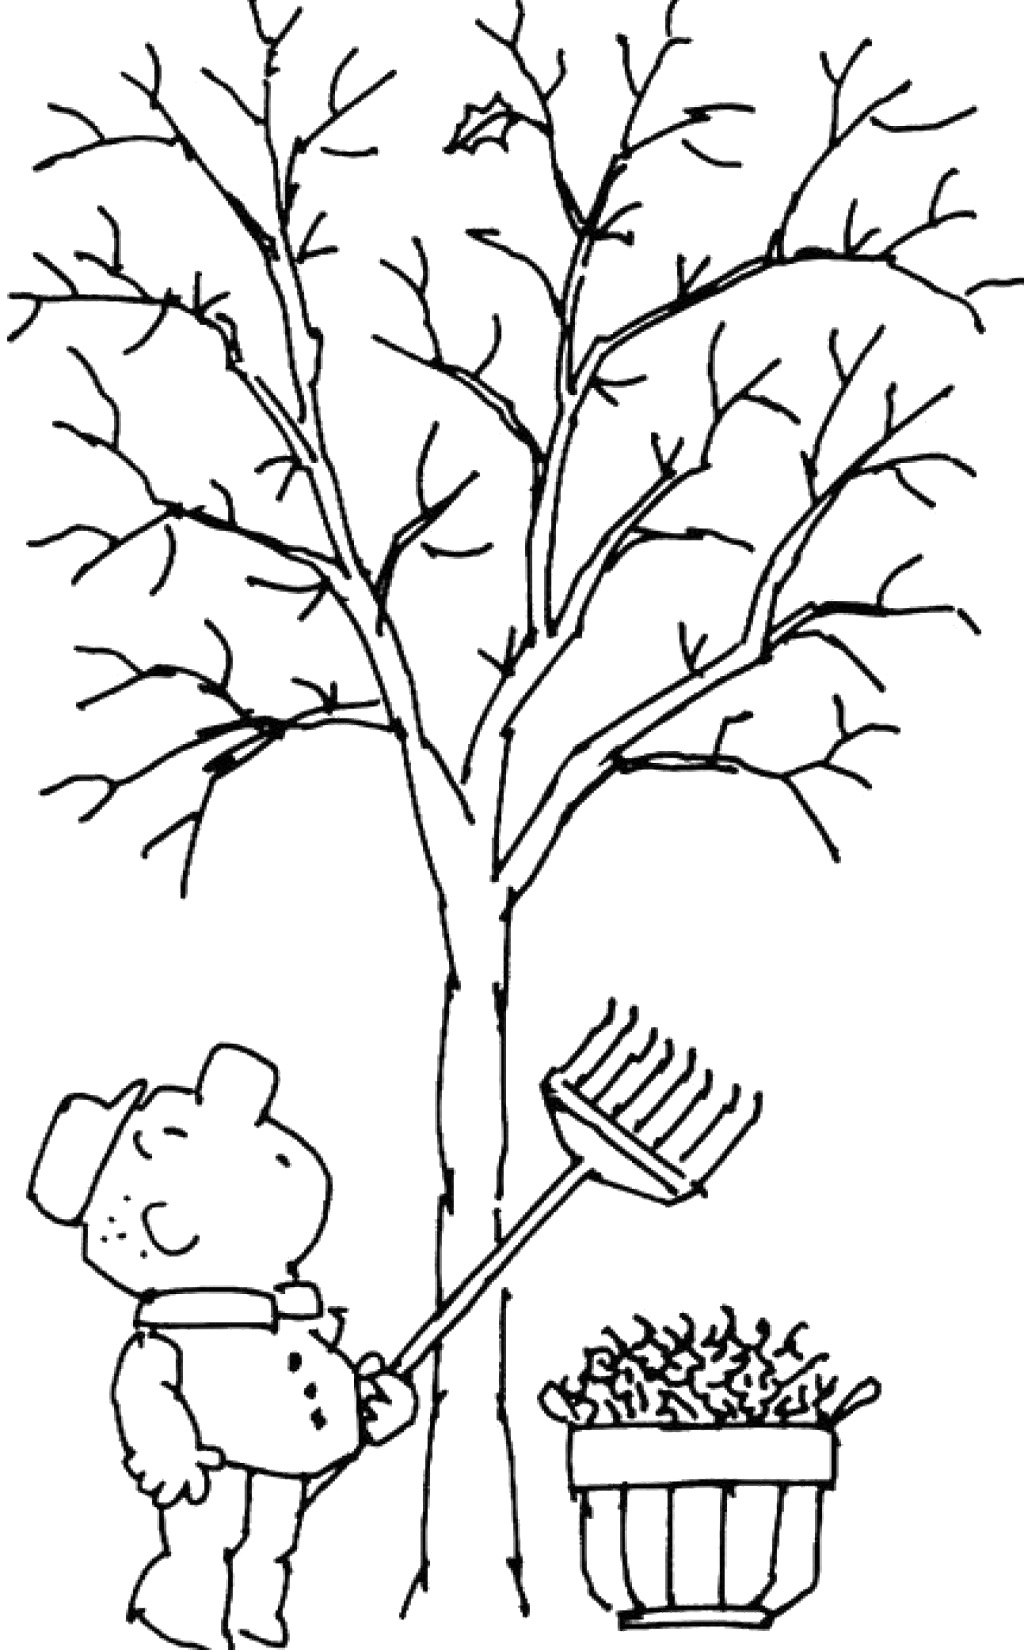 tree with leaves coloring pages tree without leaves coloring page to print and download with pages tree coloring leaves